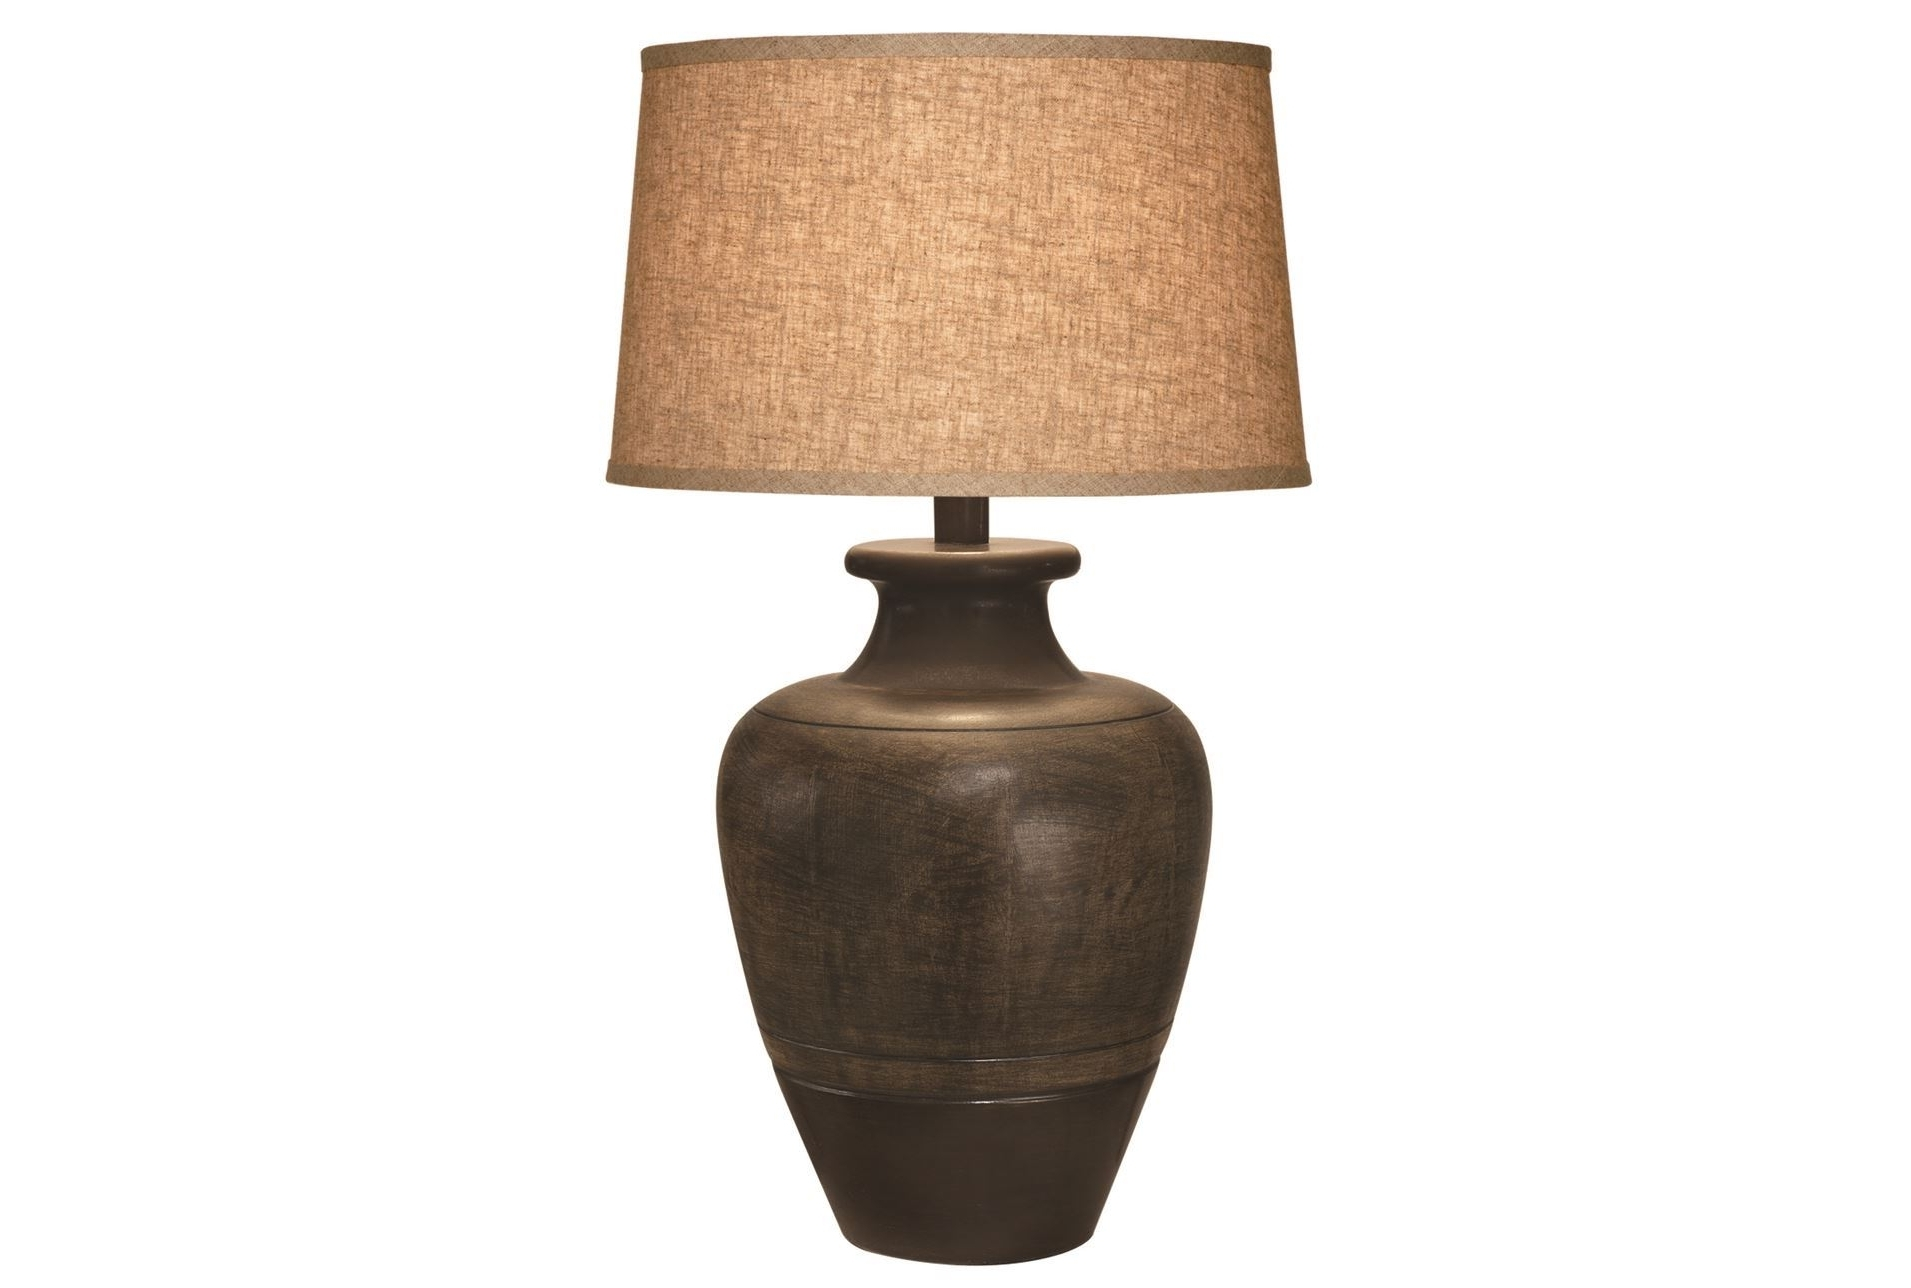 Most Current Bronze Table Lamps For Living Room – Living Room Decorating Design Throughout Bronze Living Room Table Lamps (View 12 of 20)